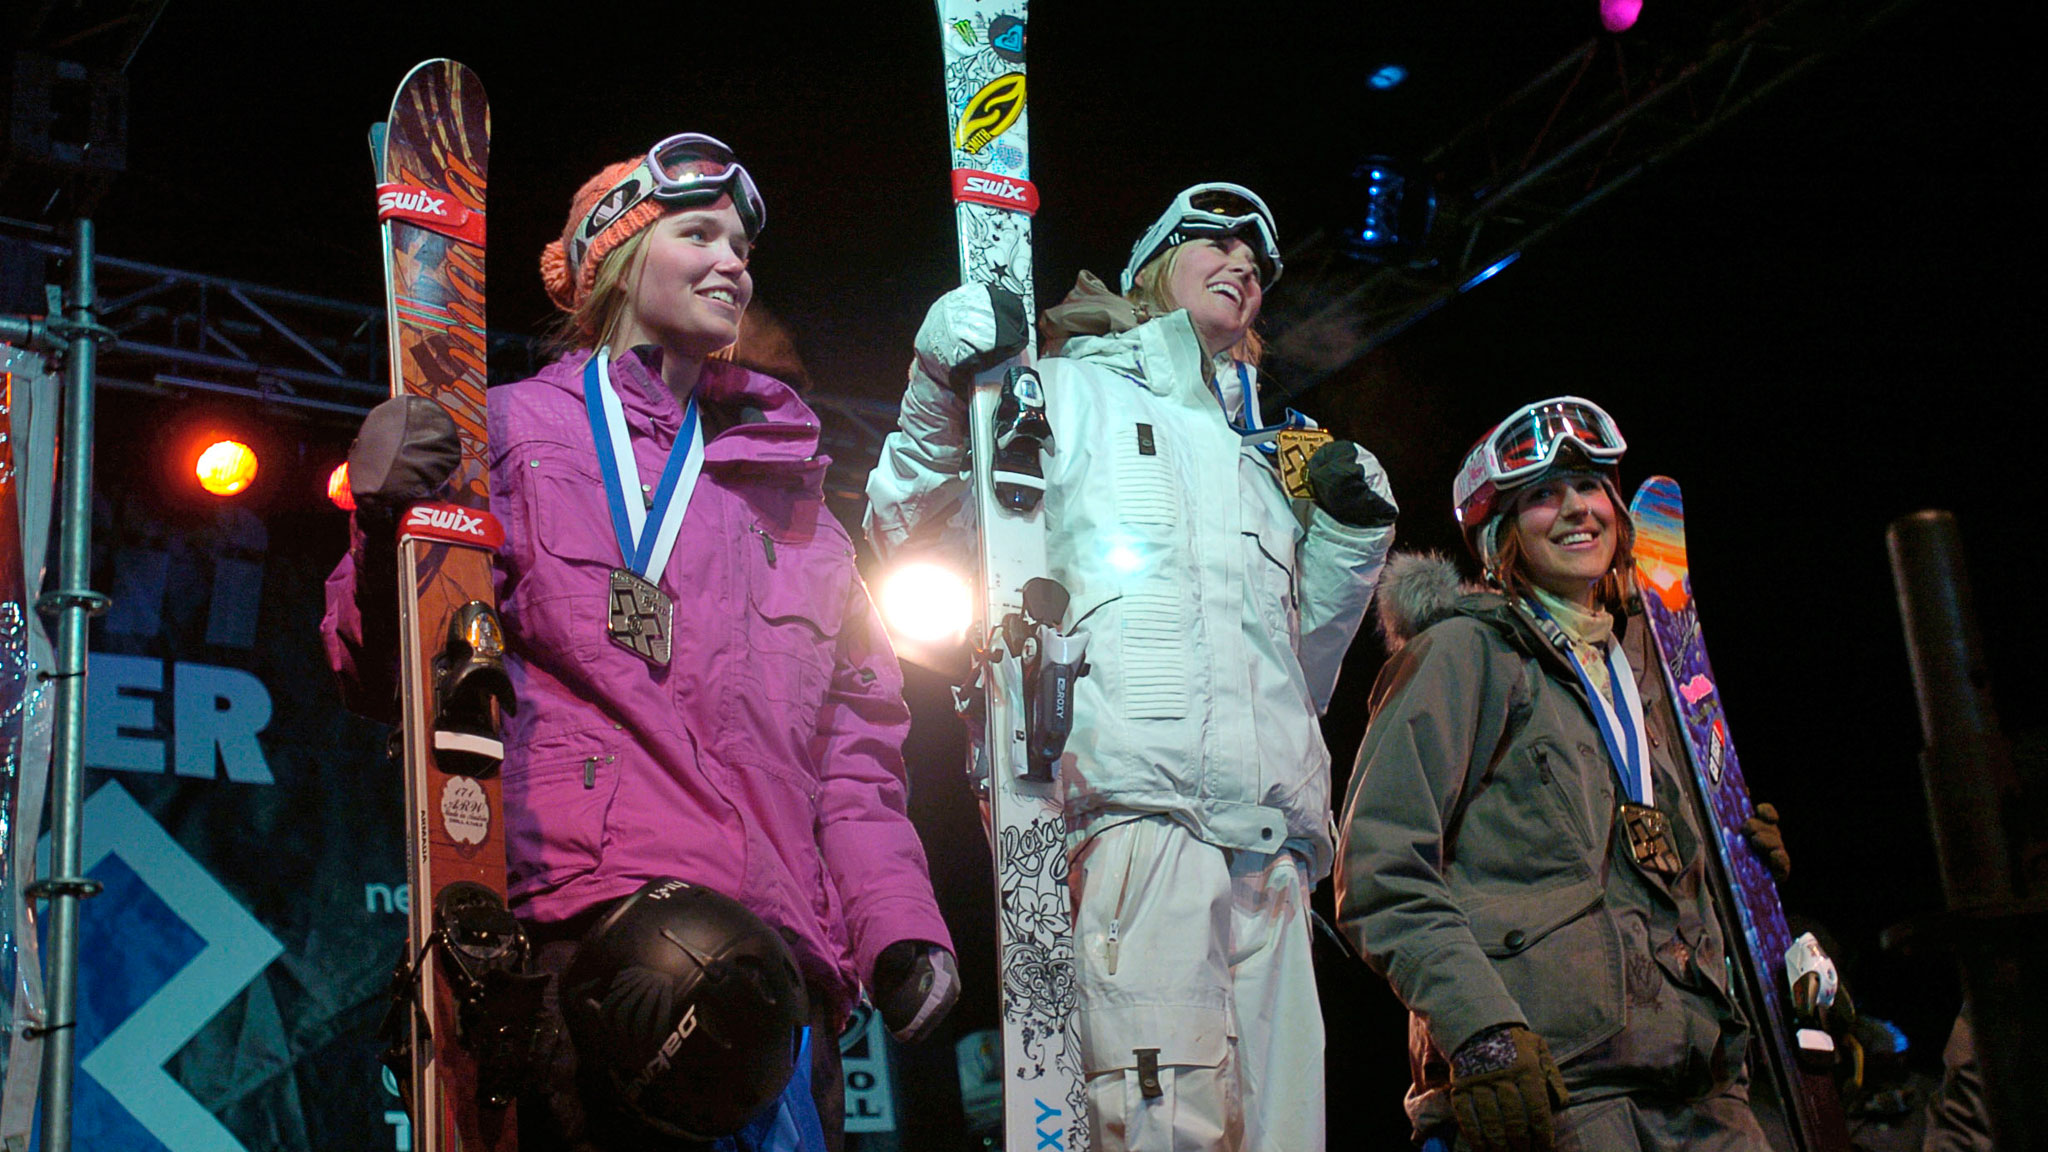 Women's SuperPipe Podium, 2007